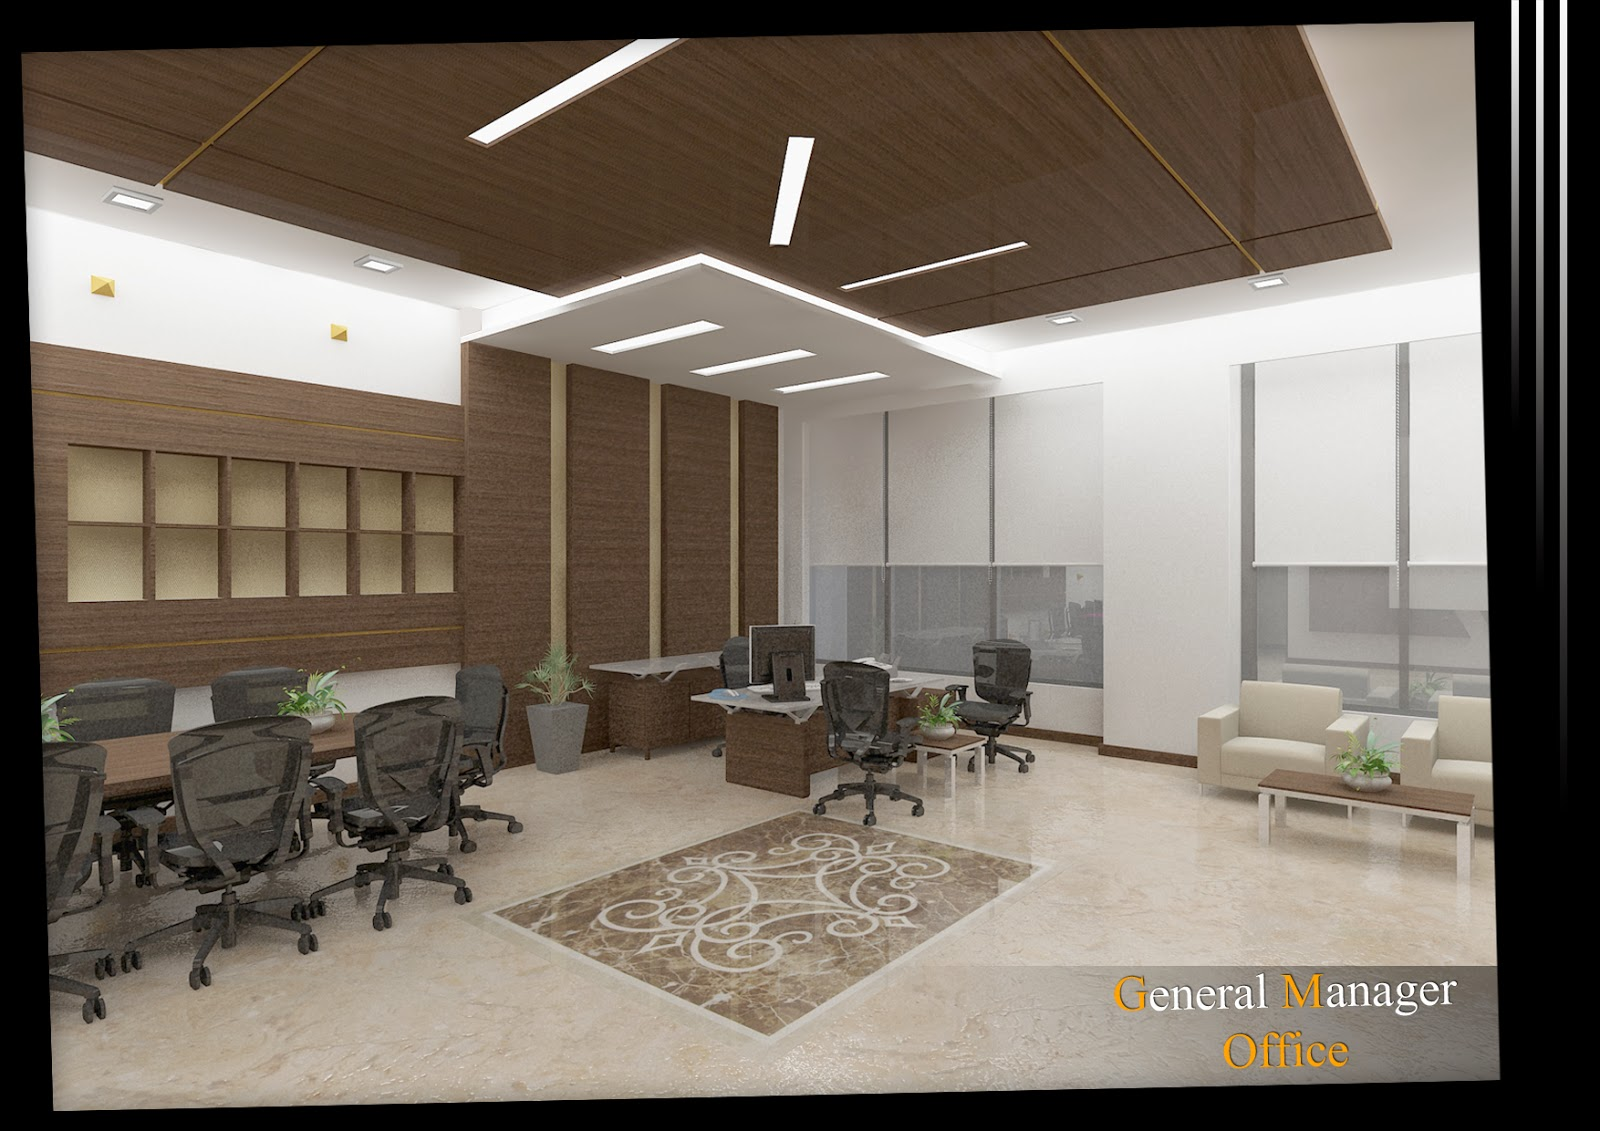 Arch michael boules interior design for general manager for Interior design qatar